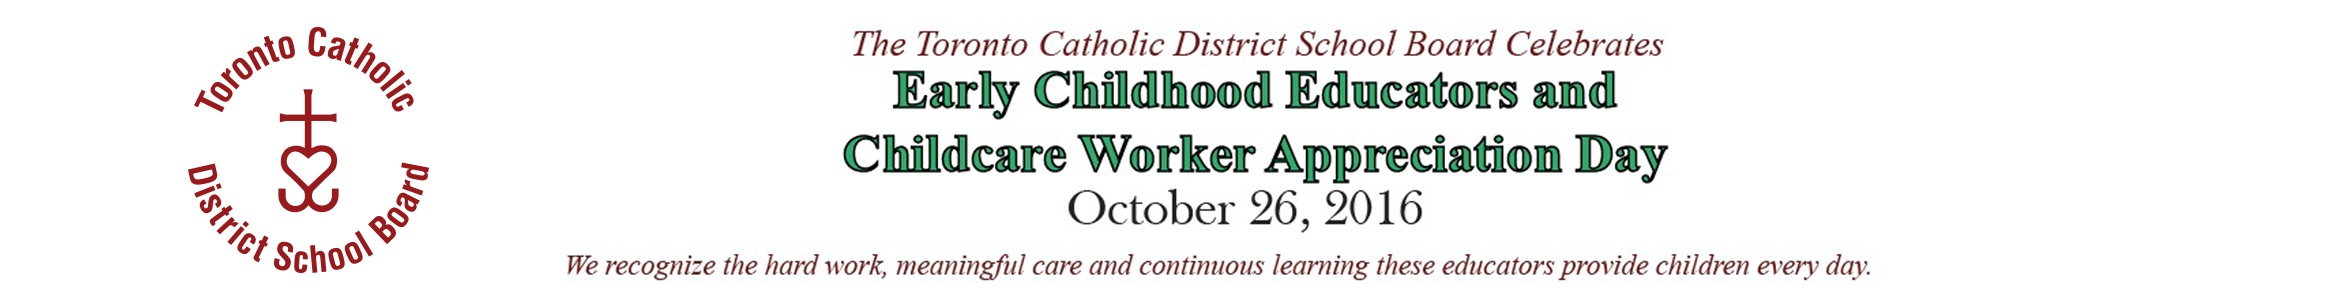 TCDSB - Early Childhood (Oct. 6-26, 2016)